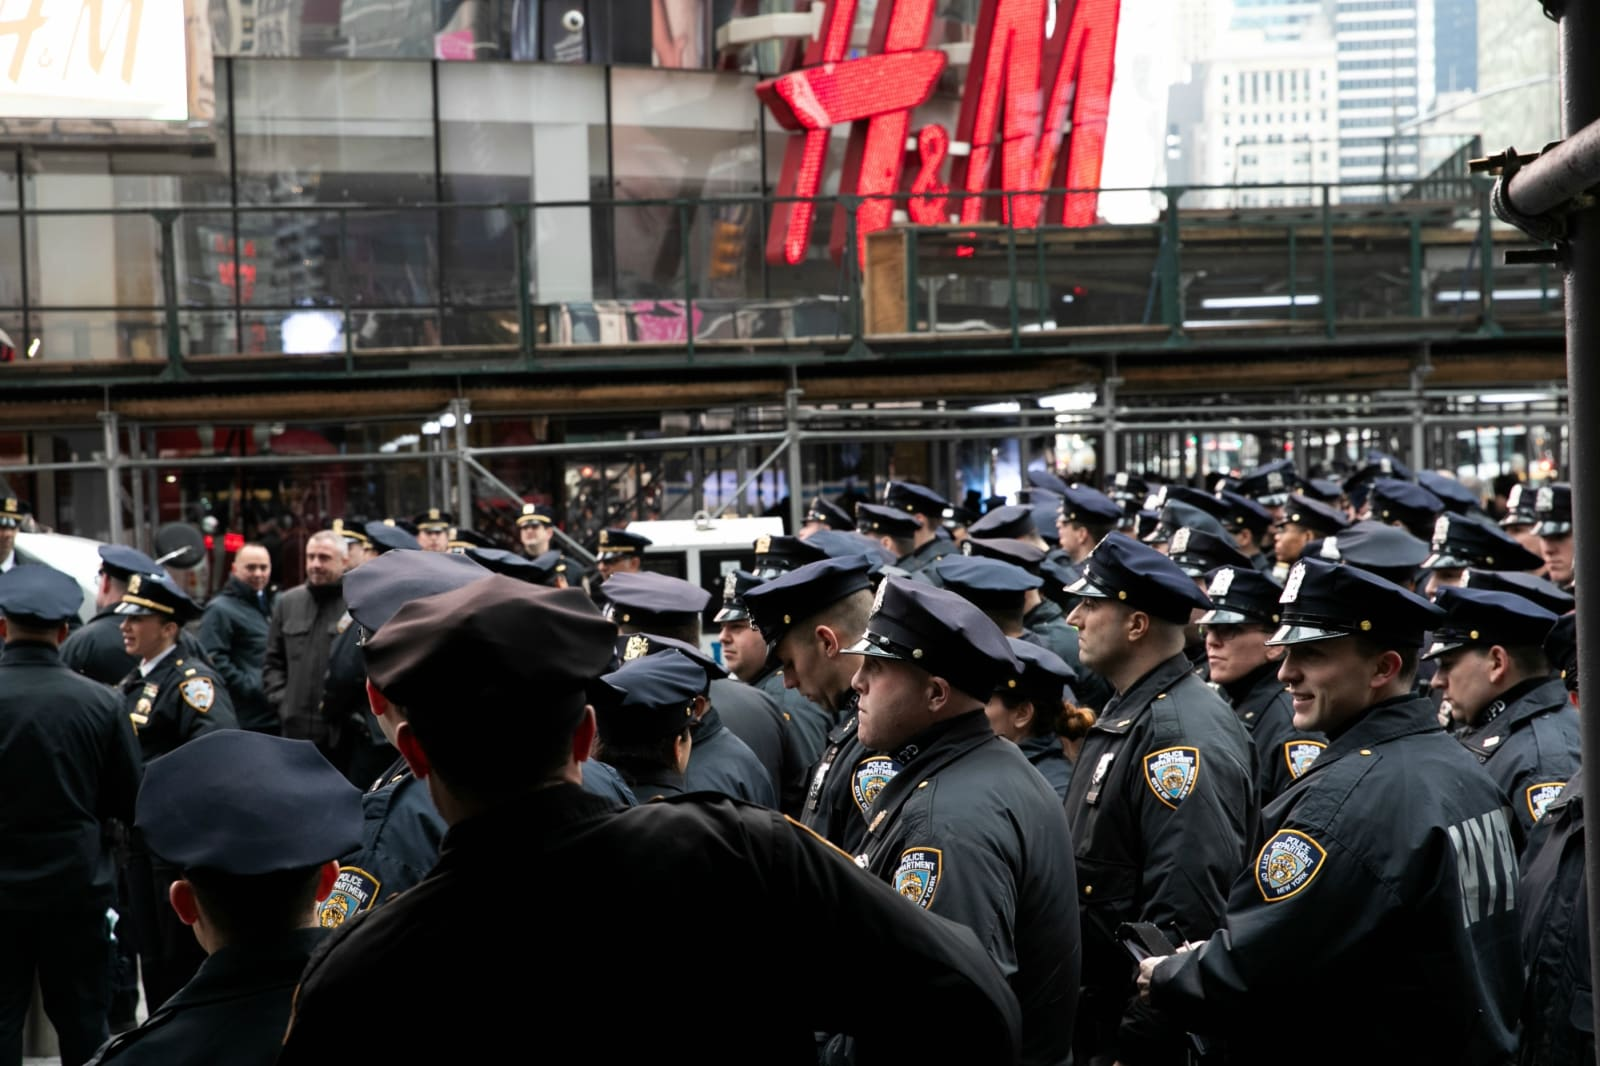 New York Police Department (NYPD) officers secure Times Square ahead of the New Year's Eve celebrations in Manhattan, New York, US, December 31, 2018. REUTERS/Jeenah Moon